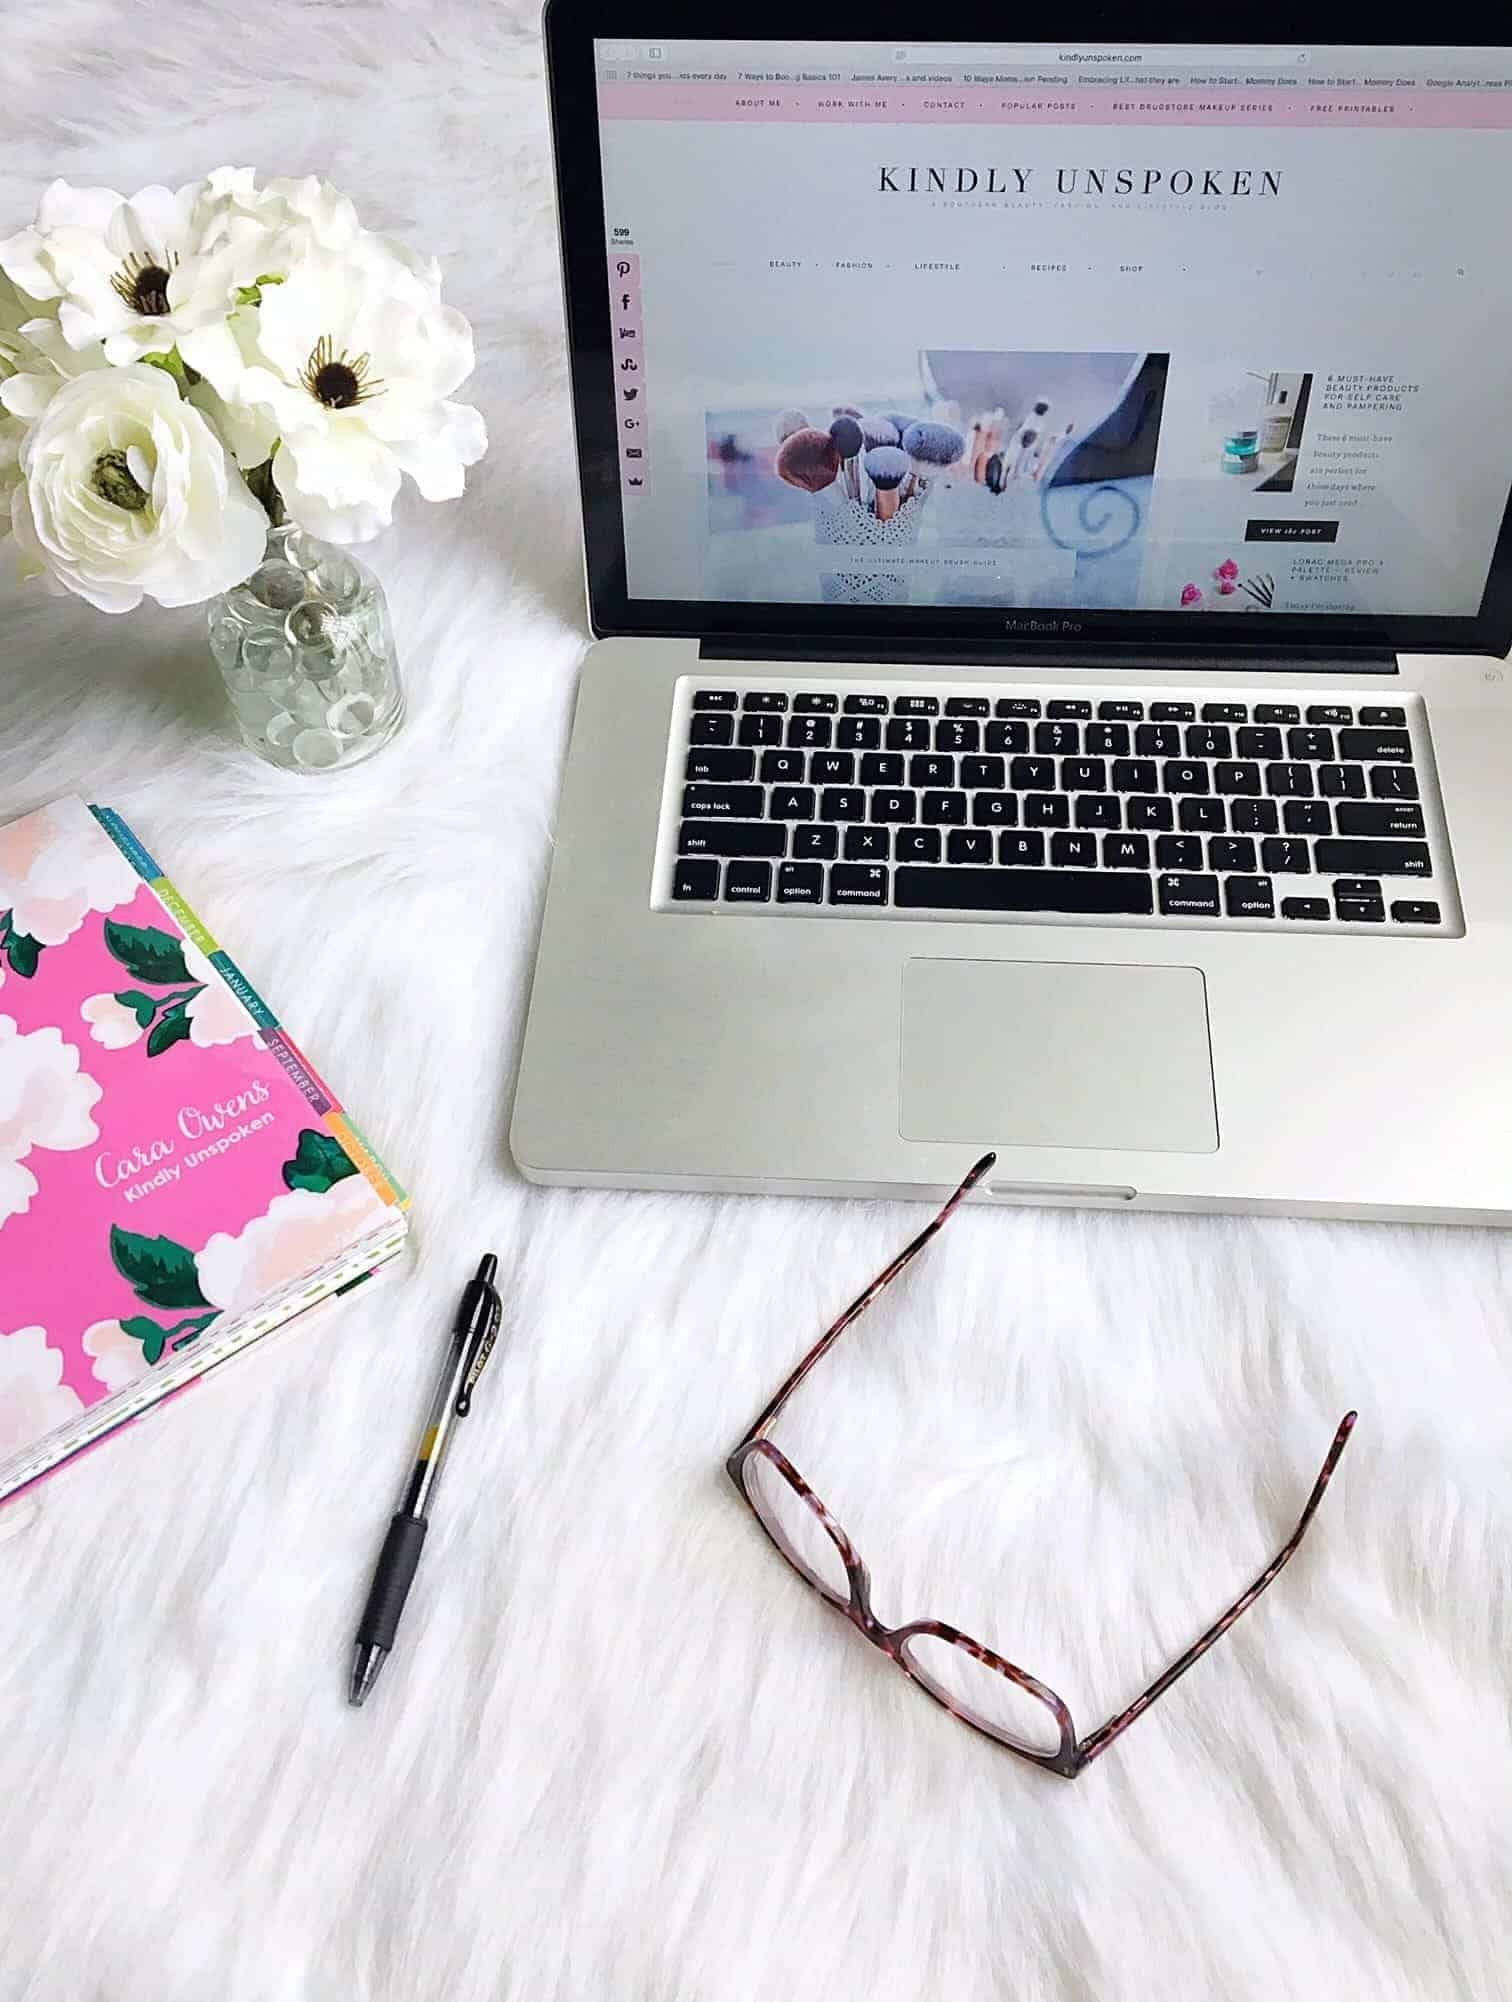 What Bloggers Do and How to Support Them- Want to know what bloggers really do everyday? I'm sharing full insight into the blogger life and ways you can show your support as a reader!